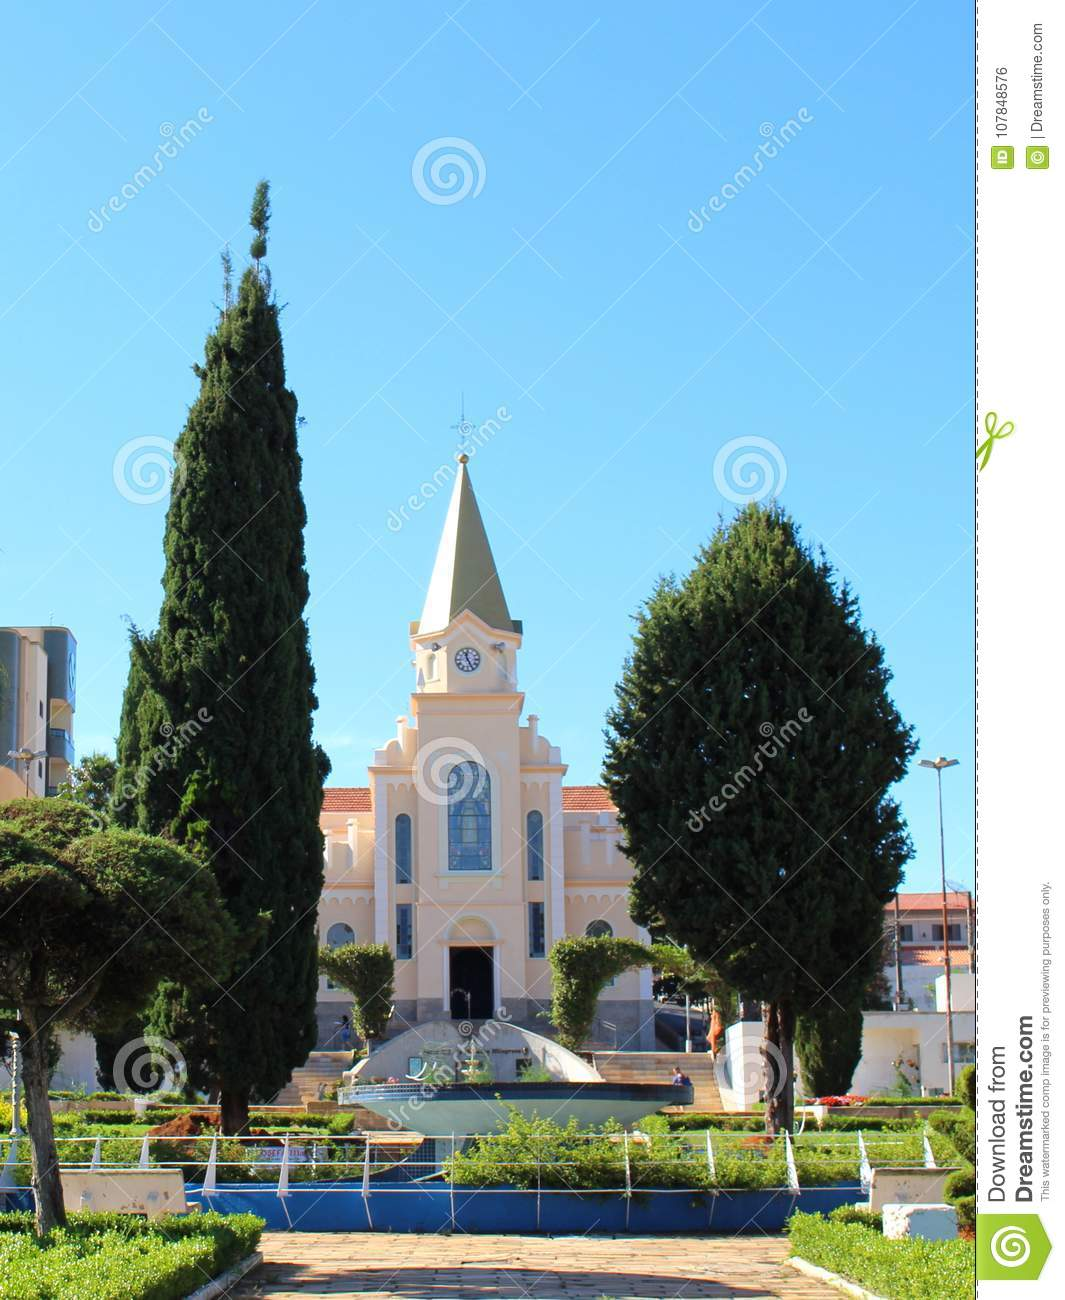 Church at little city in Brazil, Monte Siao-MG